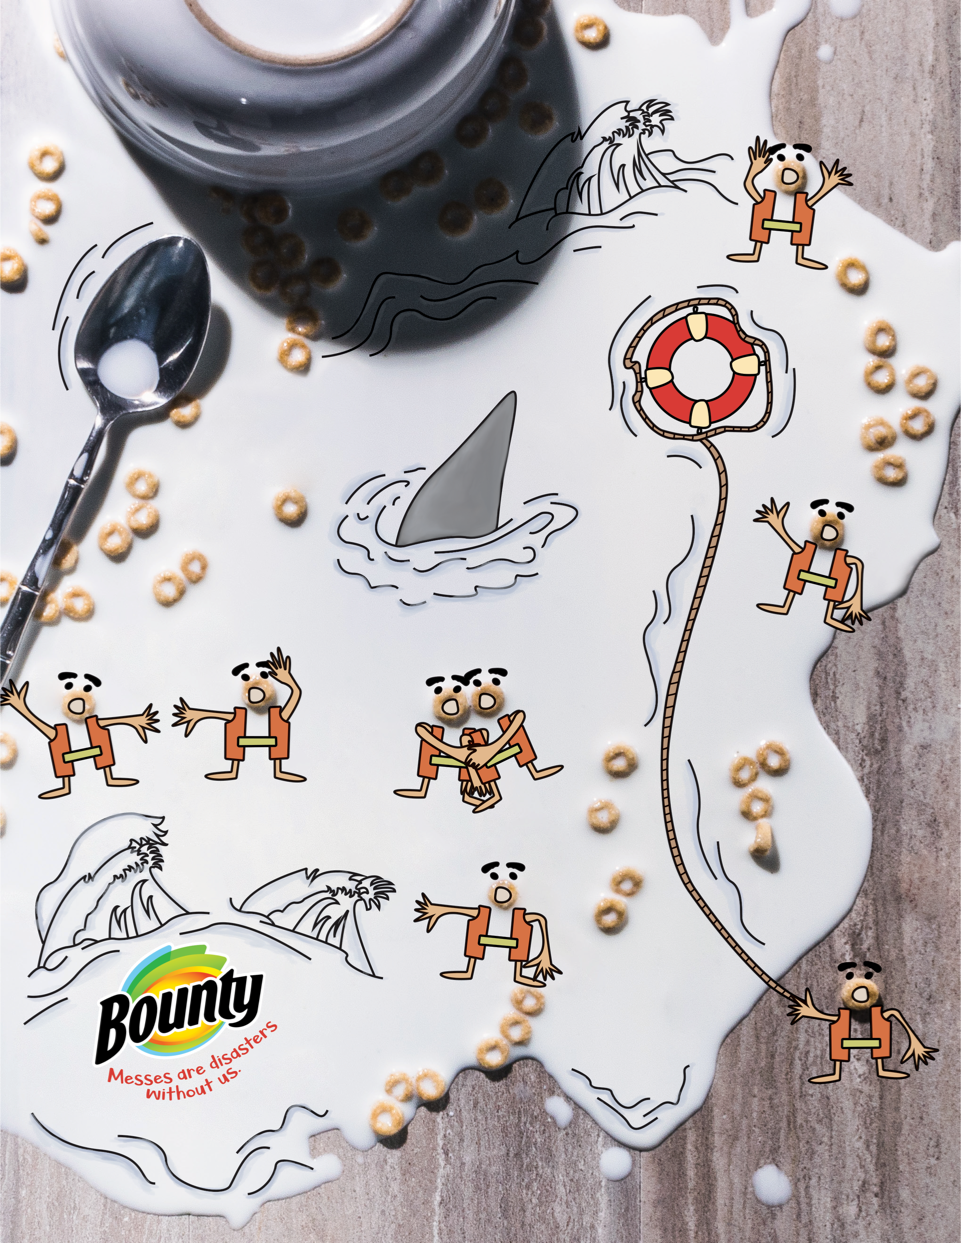 Cheerios Spill Bounty.png